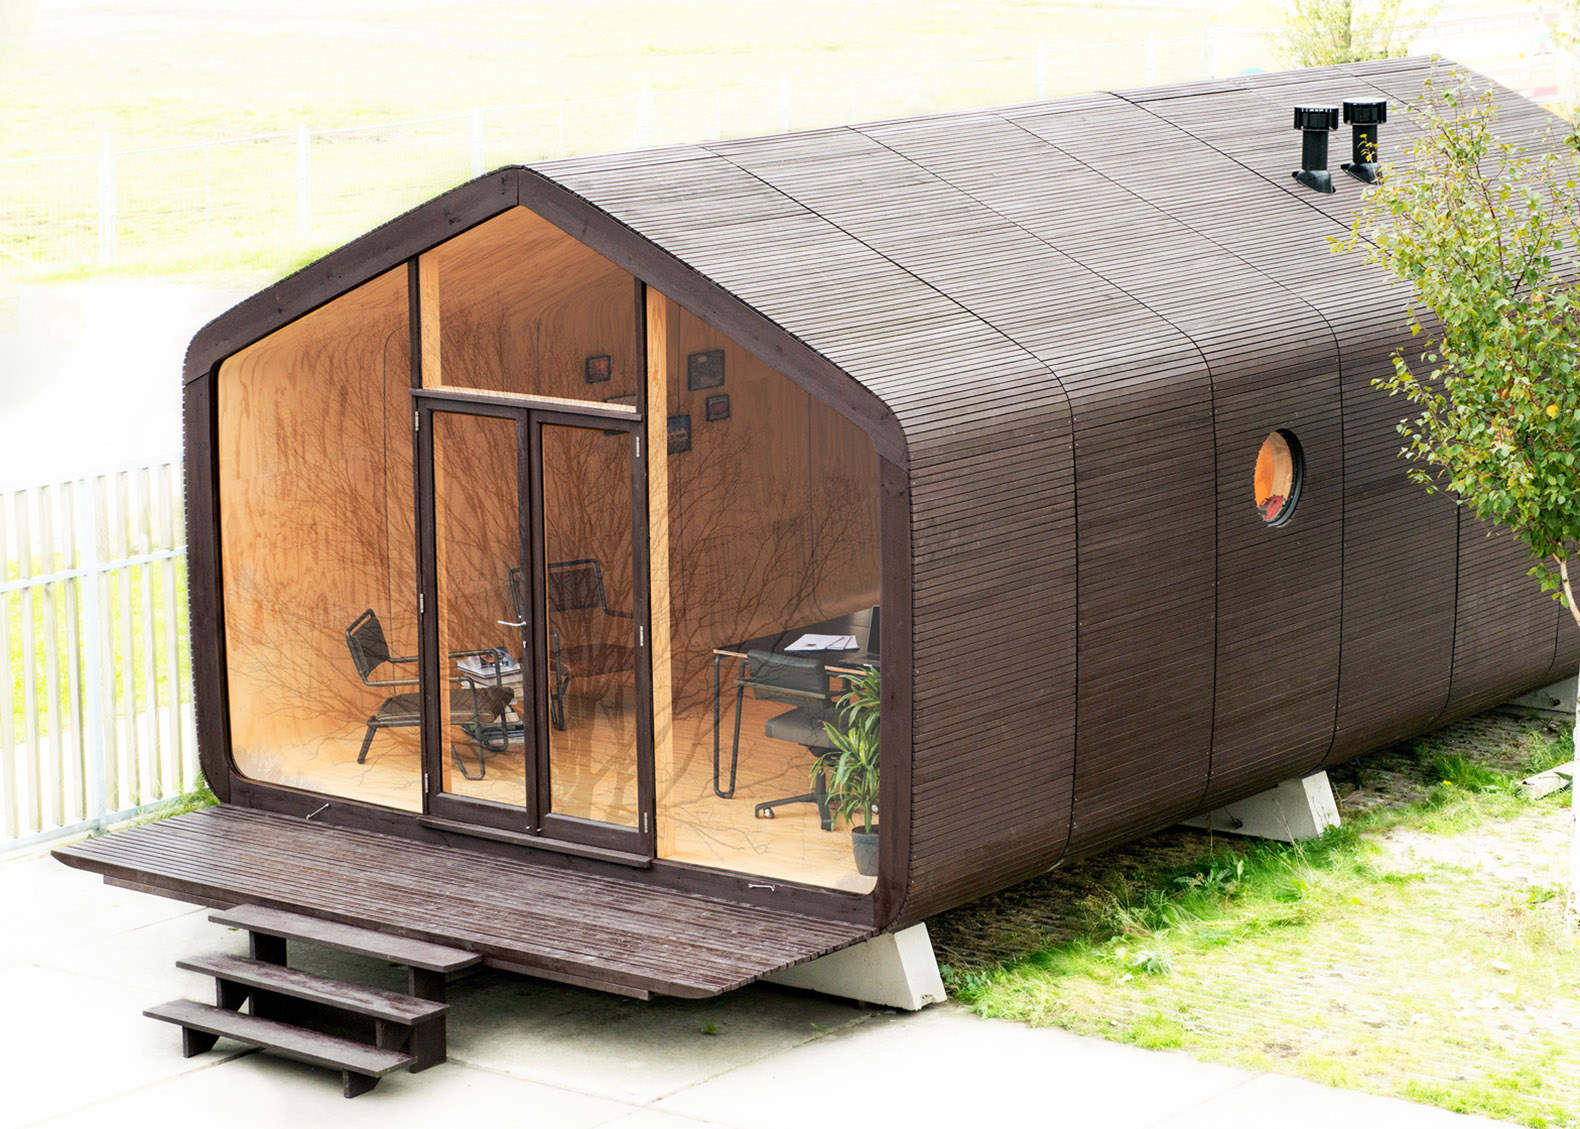 Modular Wikkelhouse wrapped in 24 layers of cardboard snaps